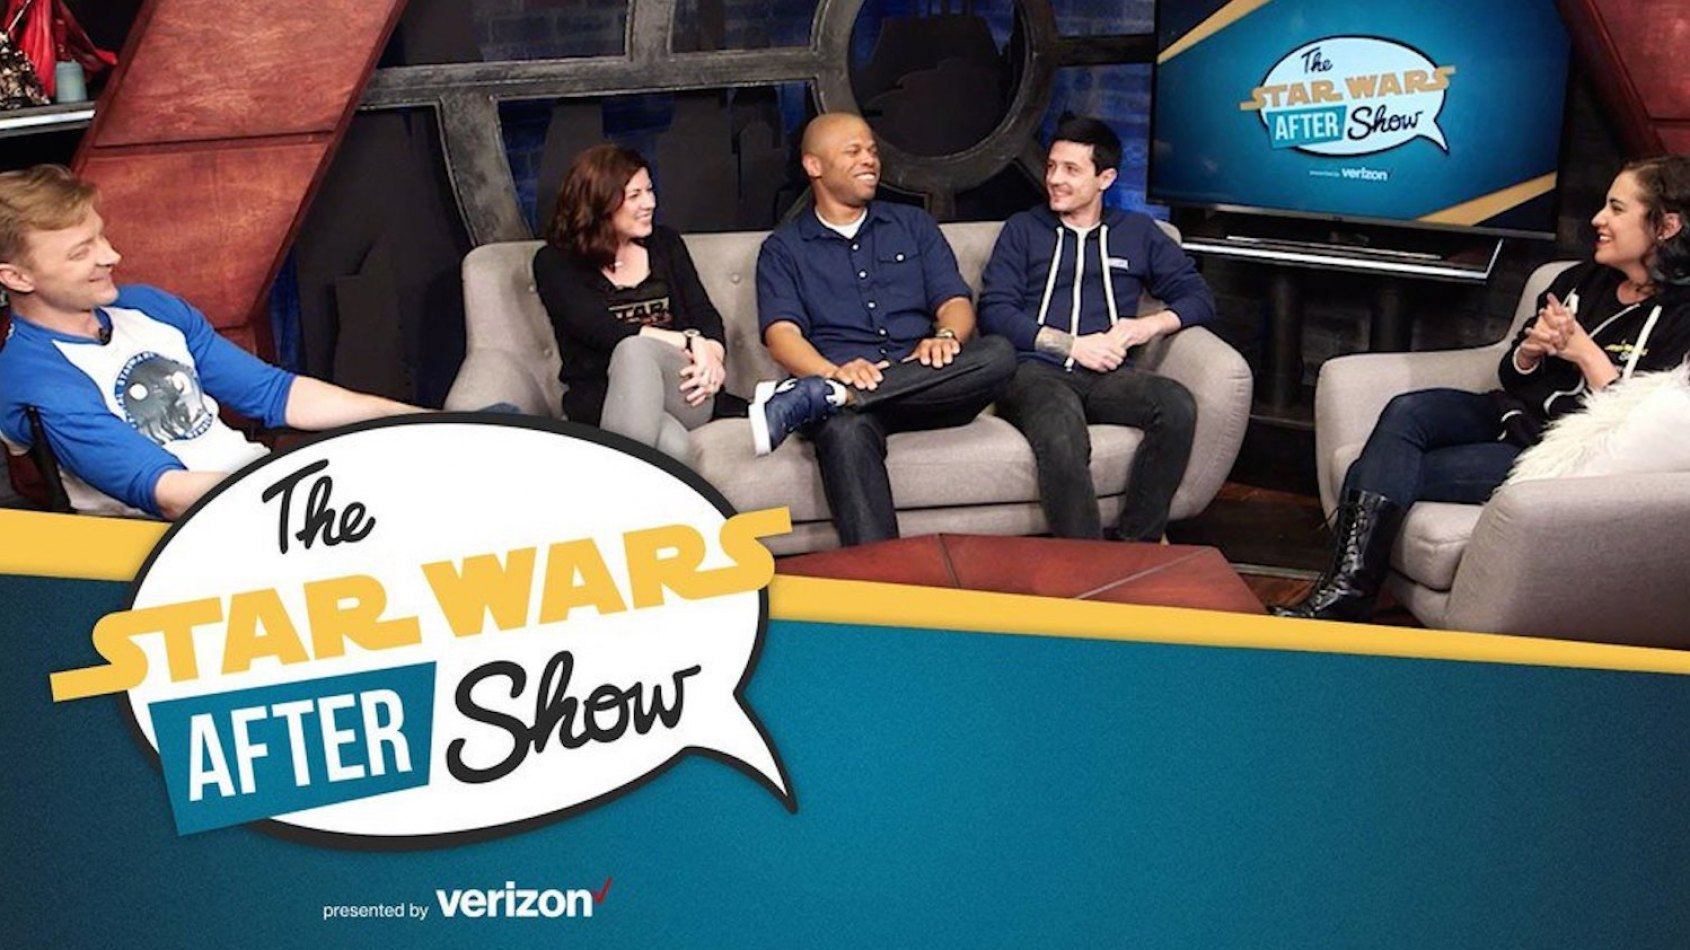 Premier épisode du Star Wars After Show